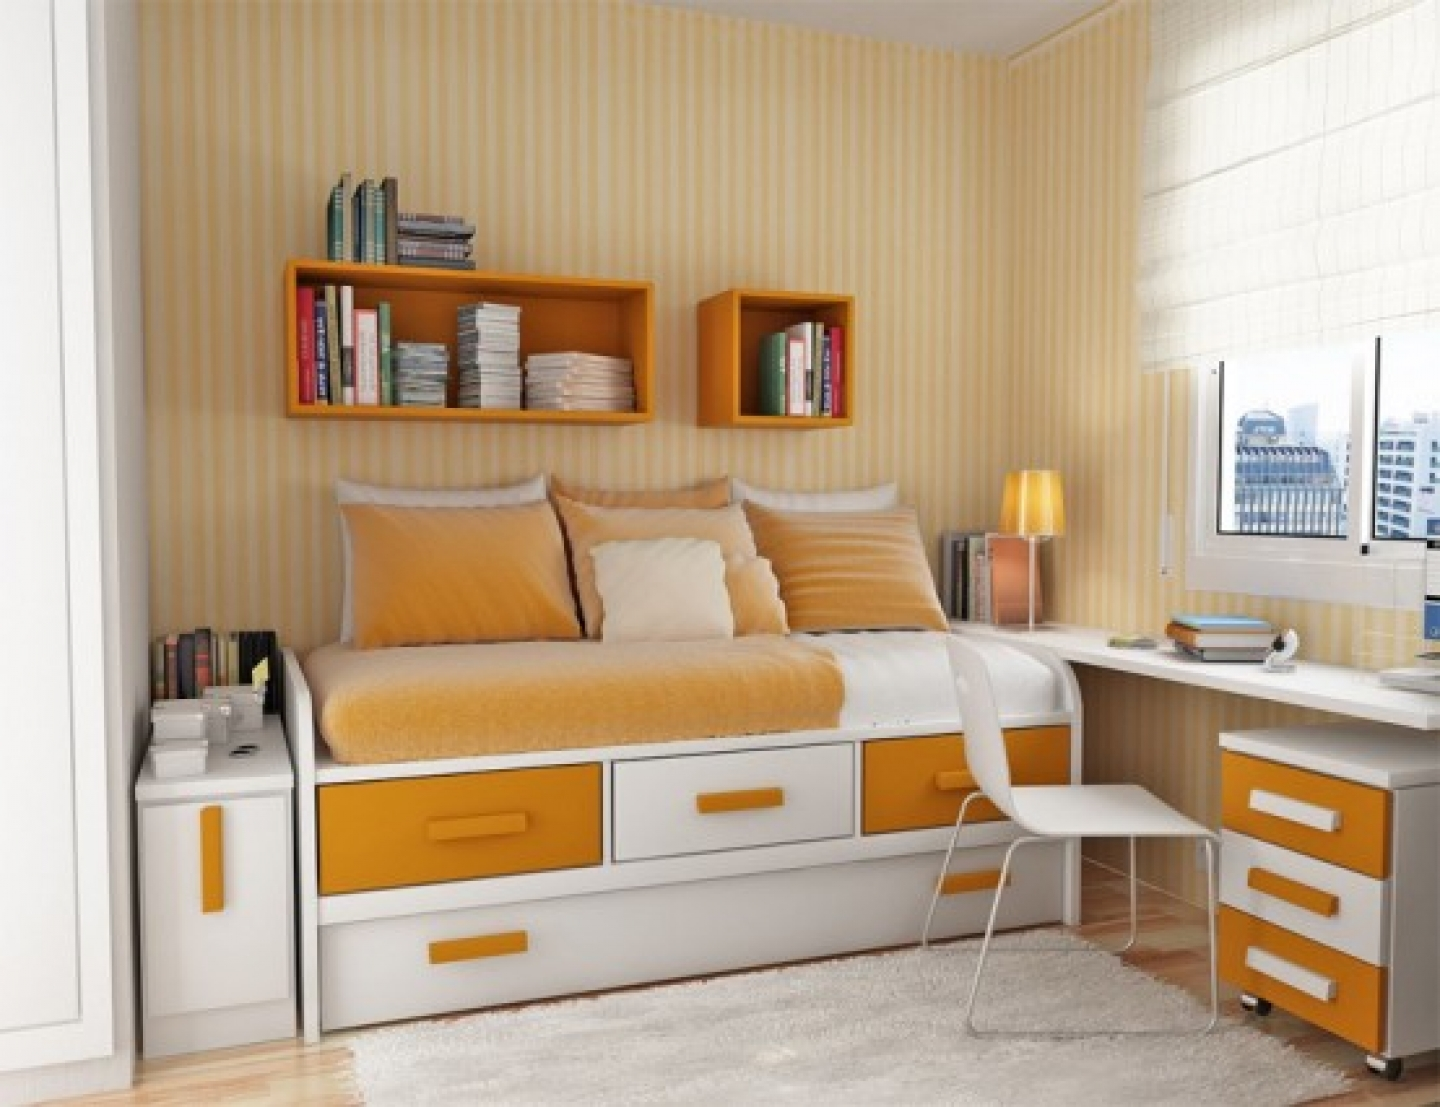 Image of: Room Makeover Ideas For Teenage Girl